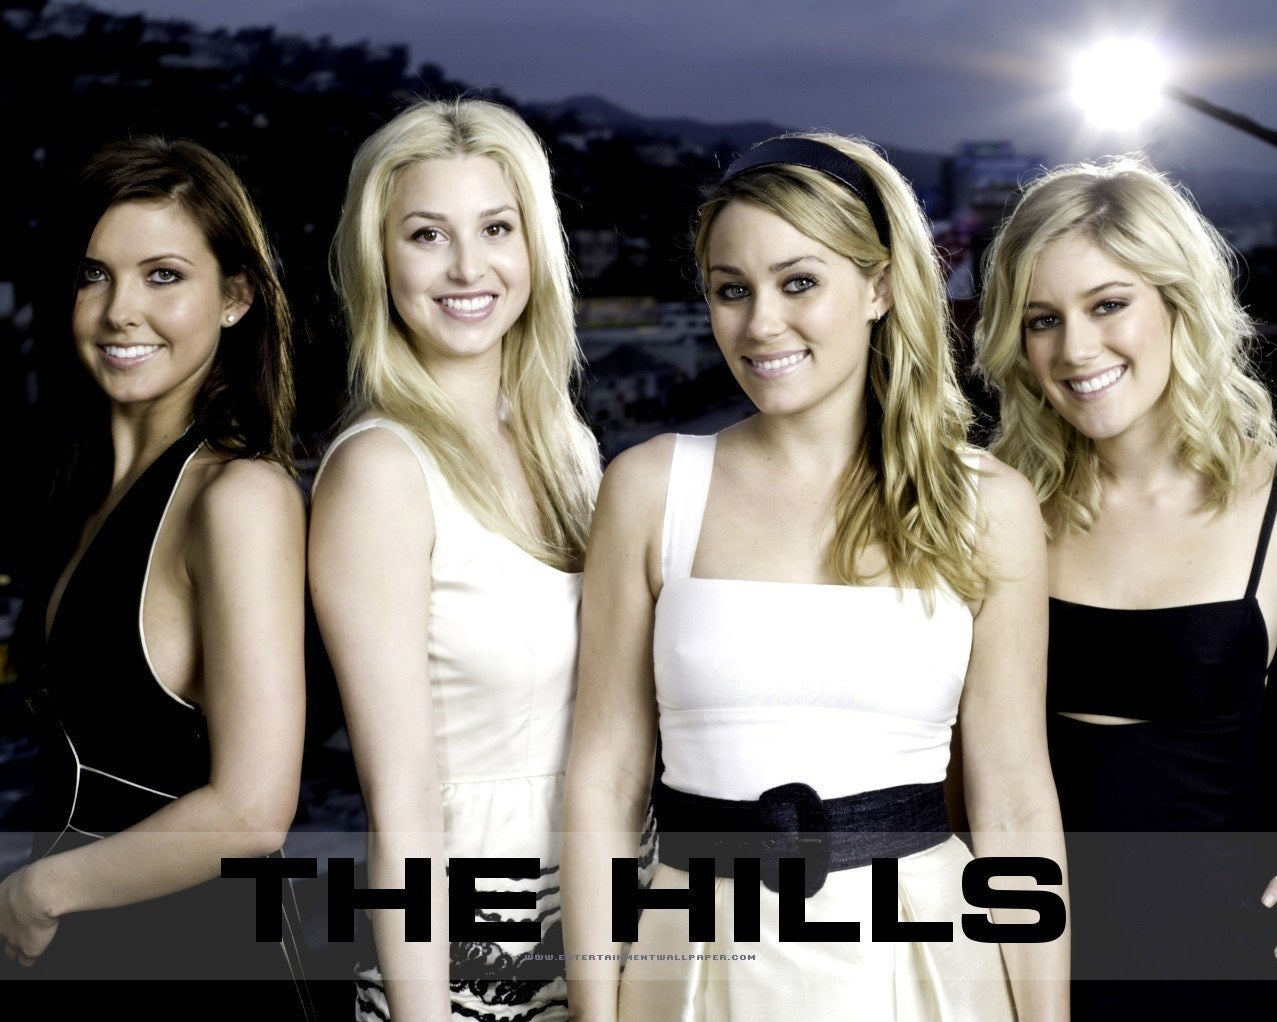 the girls from the hills